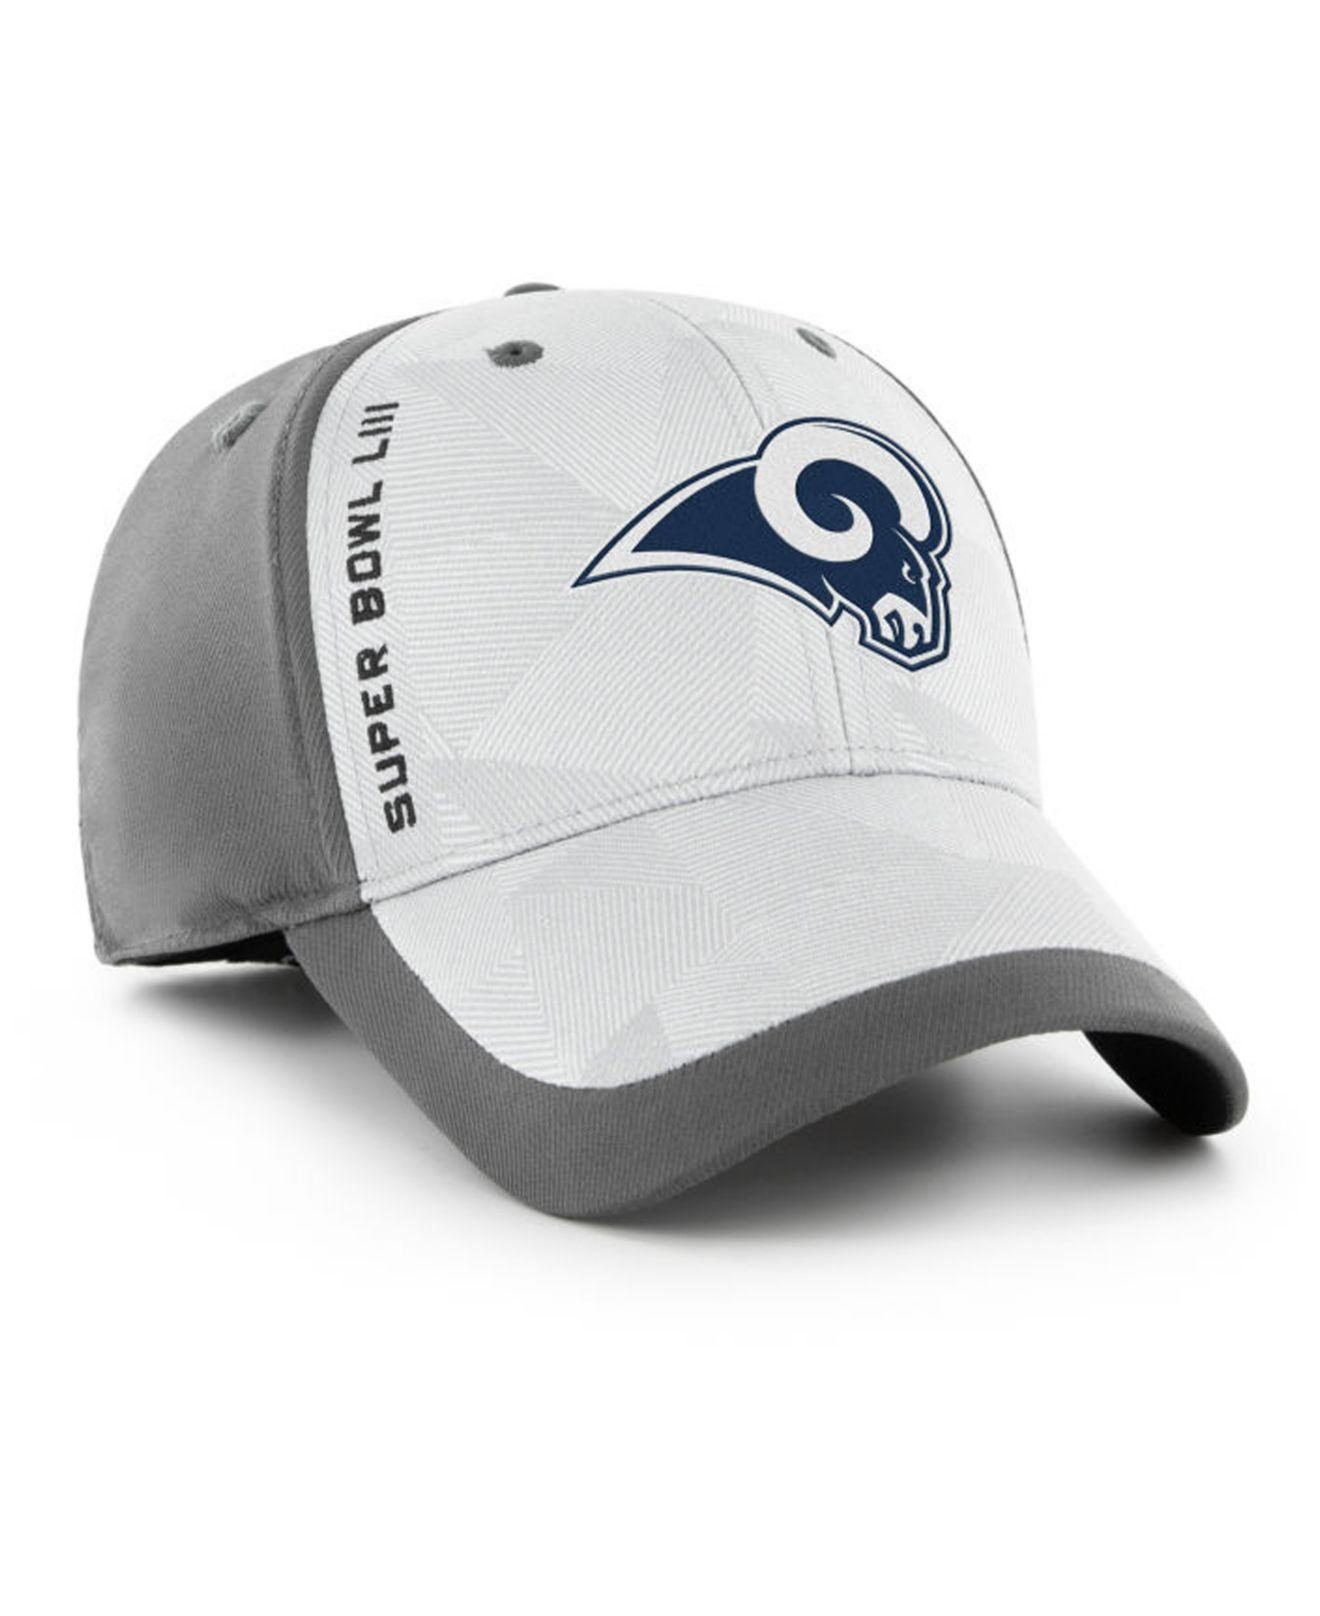 3d3a9370dfda5 Lyst - 47 Brand Los Angeles Rams Super Bowl Liii Uphill Contender ...